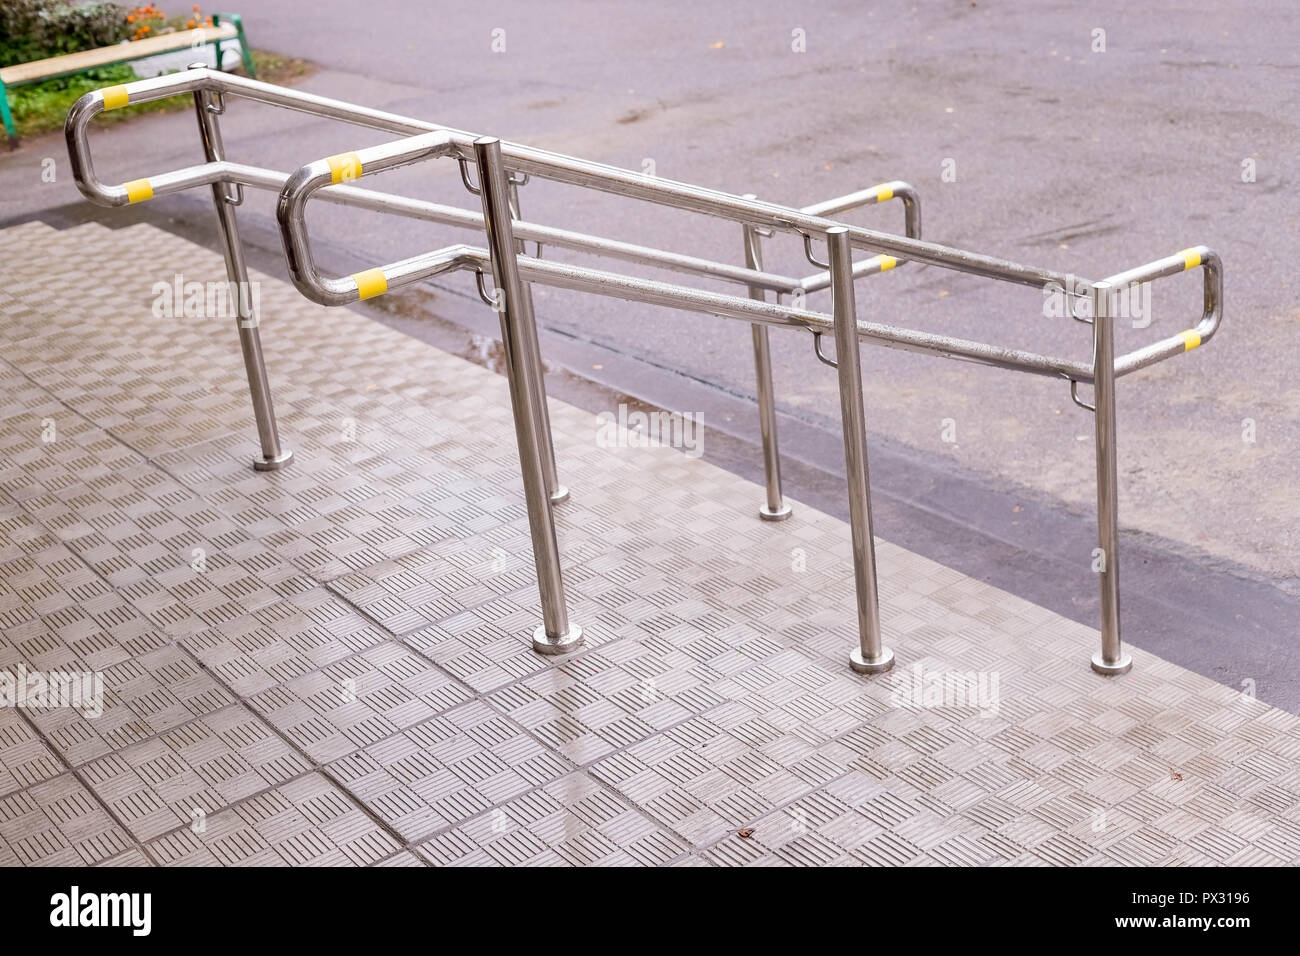 Stainless Steel Handrails Are Installed On The Walls And Steps | Outside Steps For Seniors | Dreamstime | Stair Treads | Handrail | Stainless Steel | Walkway